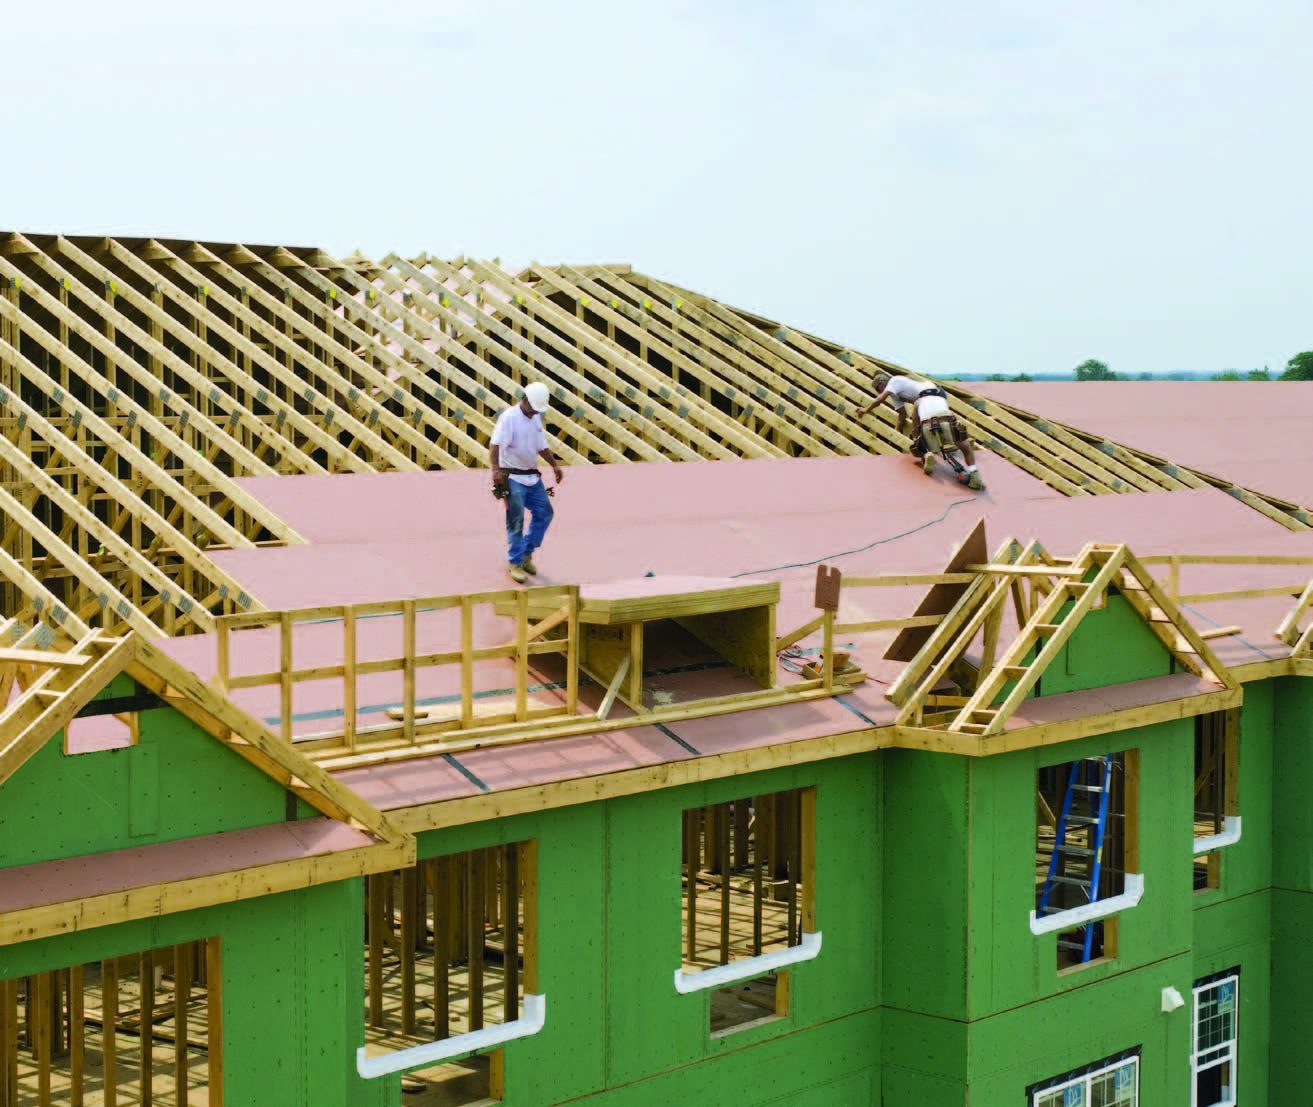 Structural Wood Systems : Mitigating risk with high performance structural wood